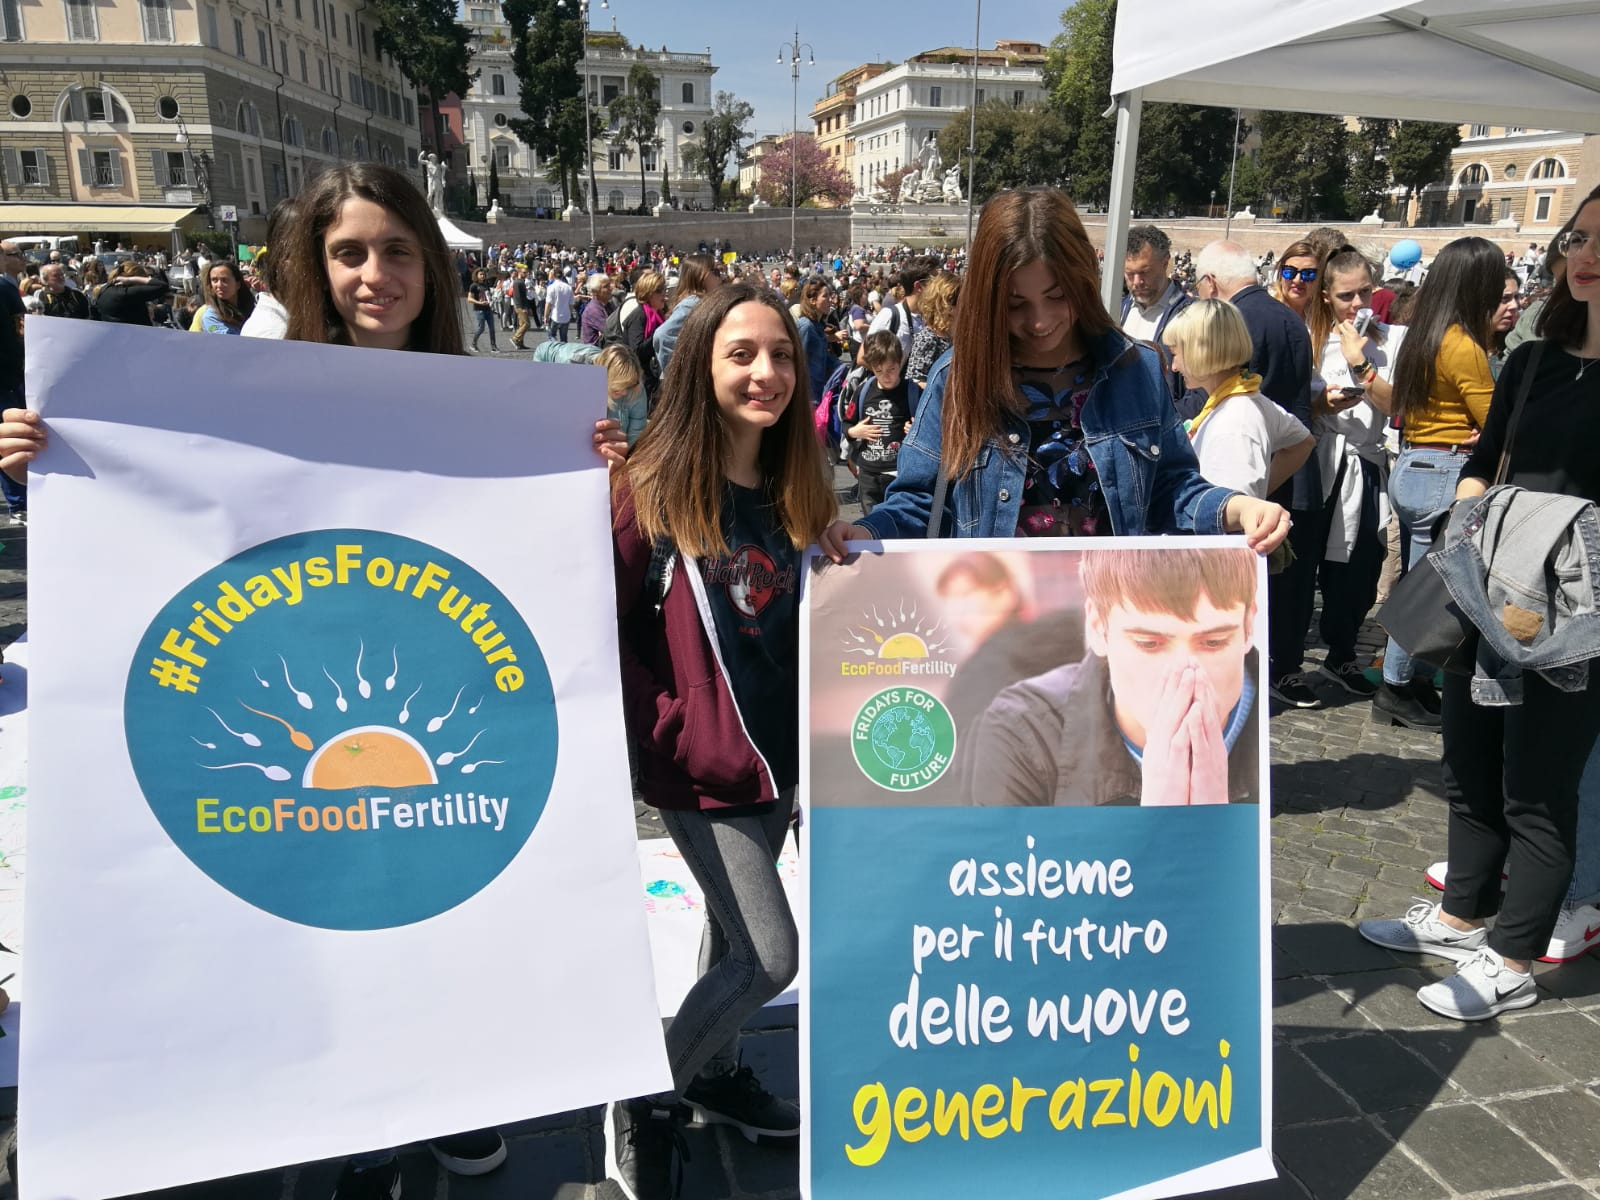 1 fridaysforfuture Ecofoodfertility 16 04 19 1